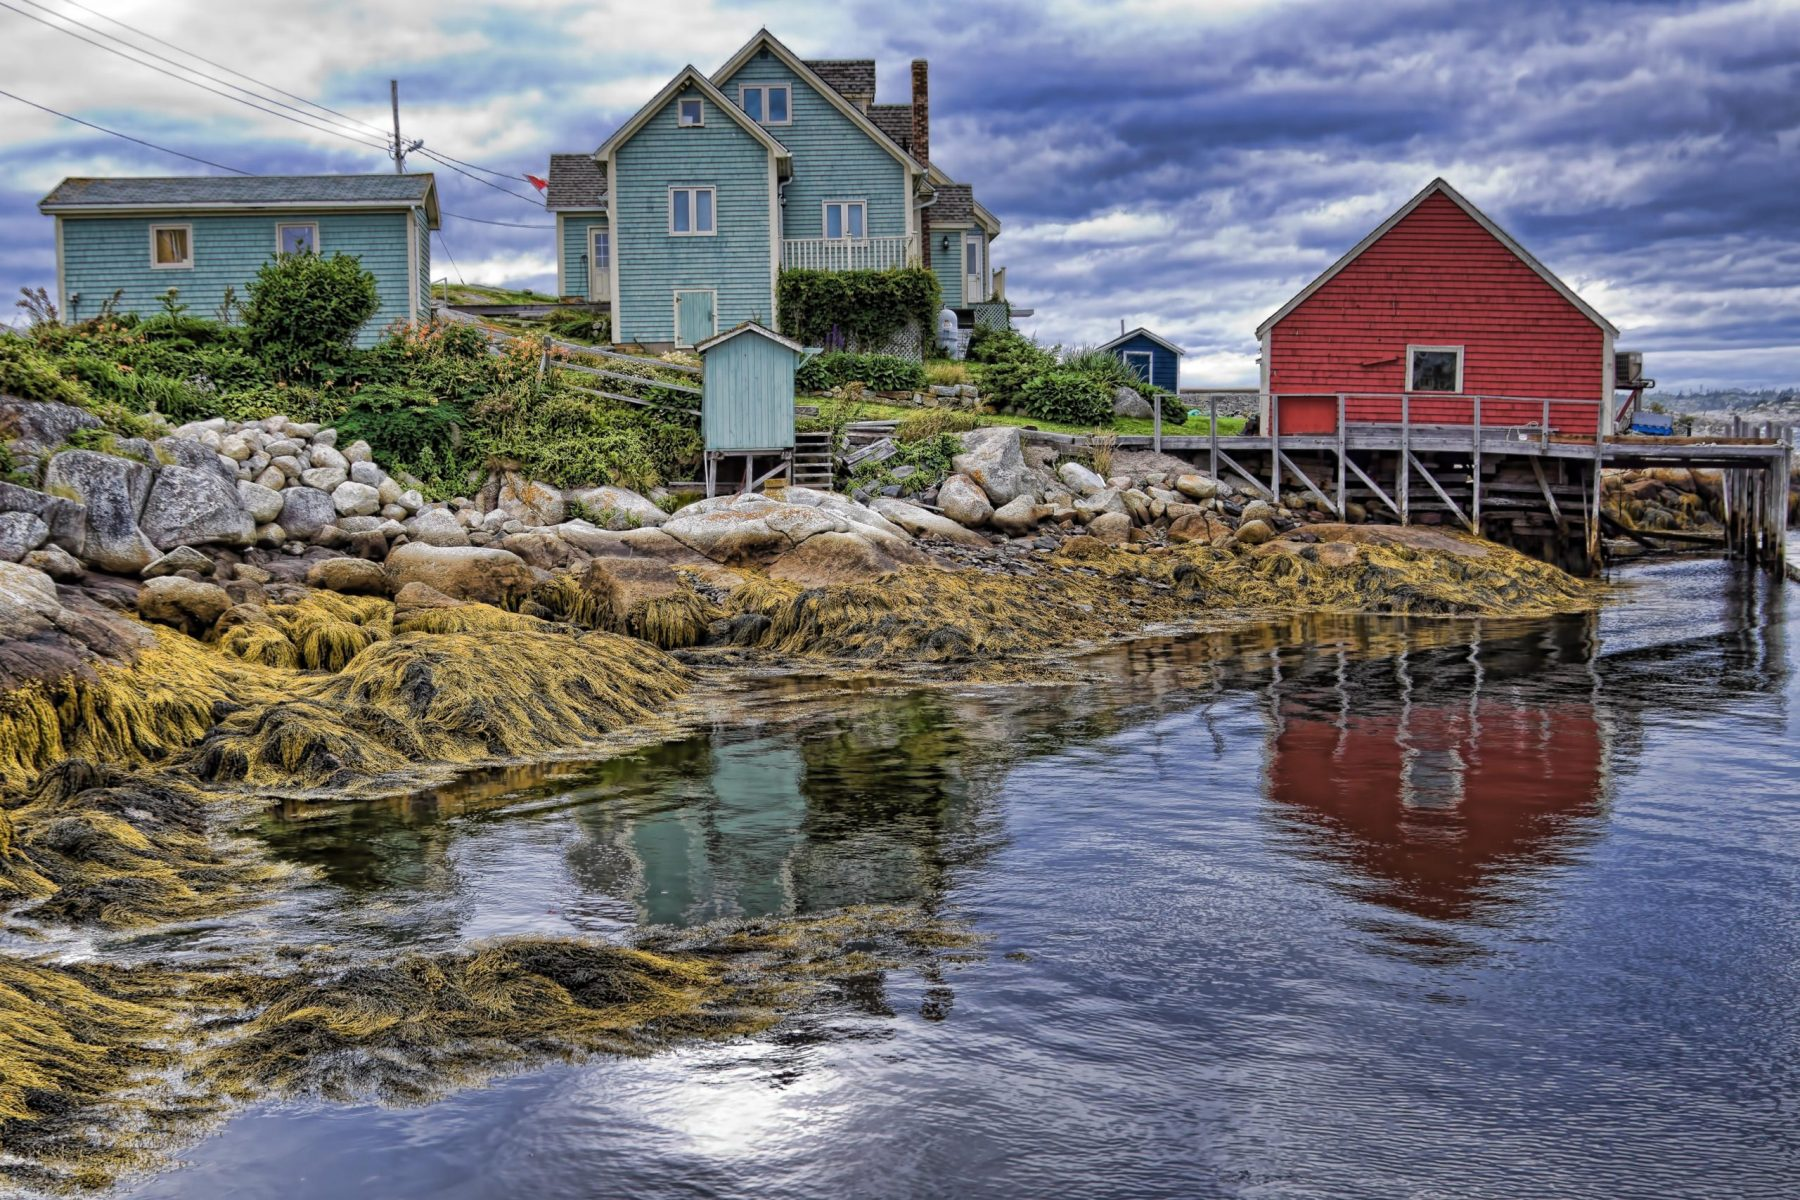 Loe tide at Peggy's Cove